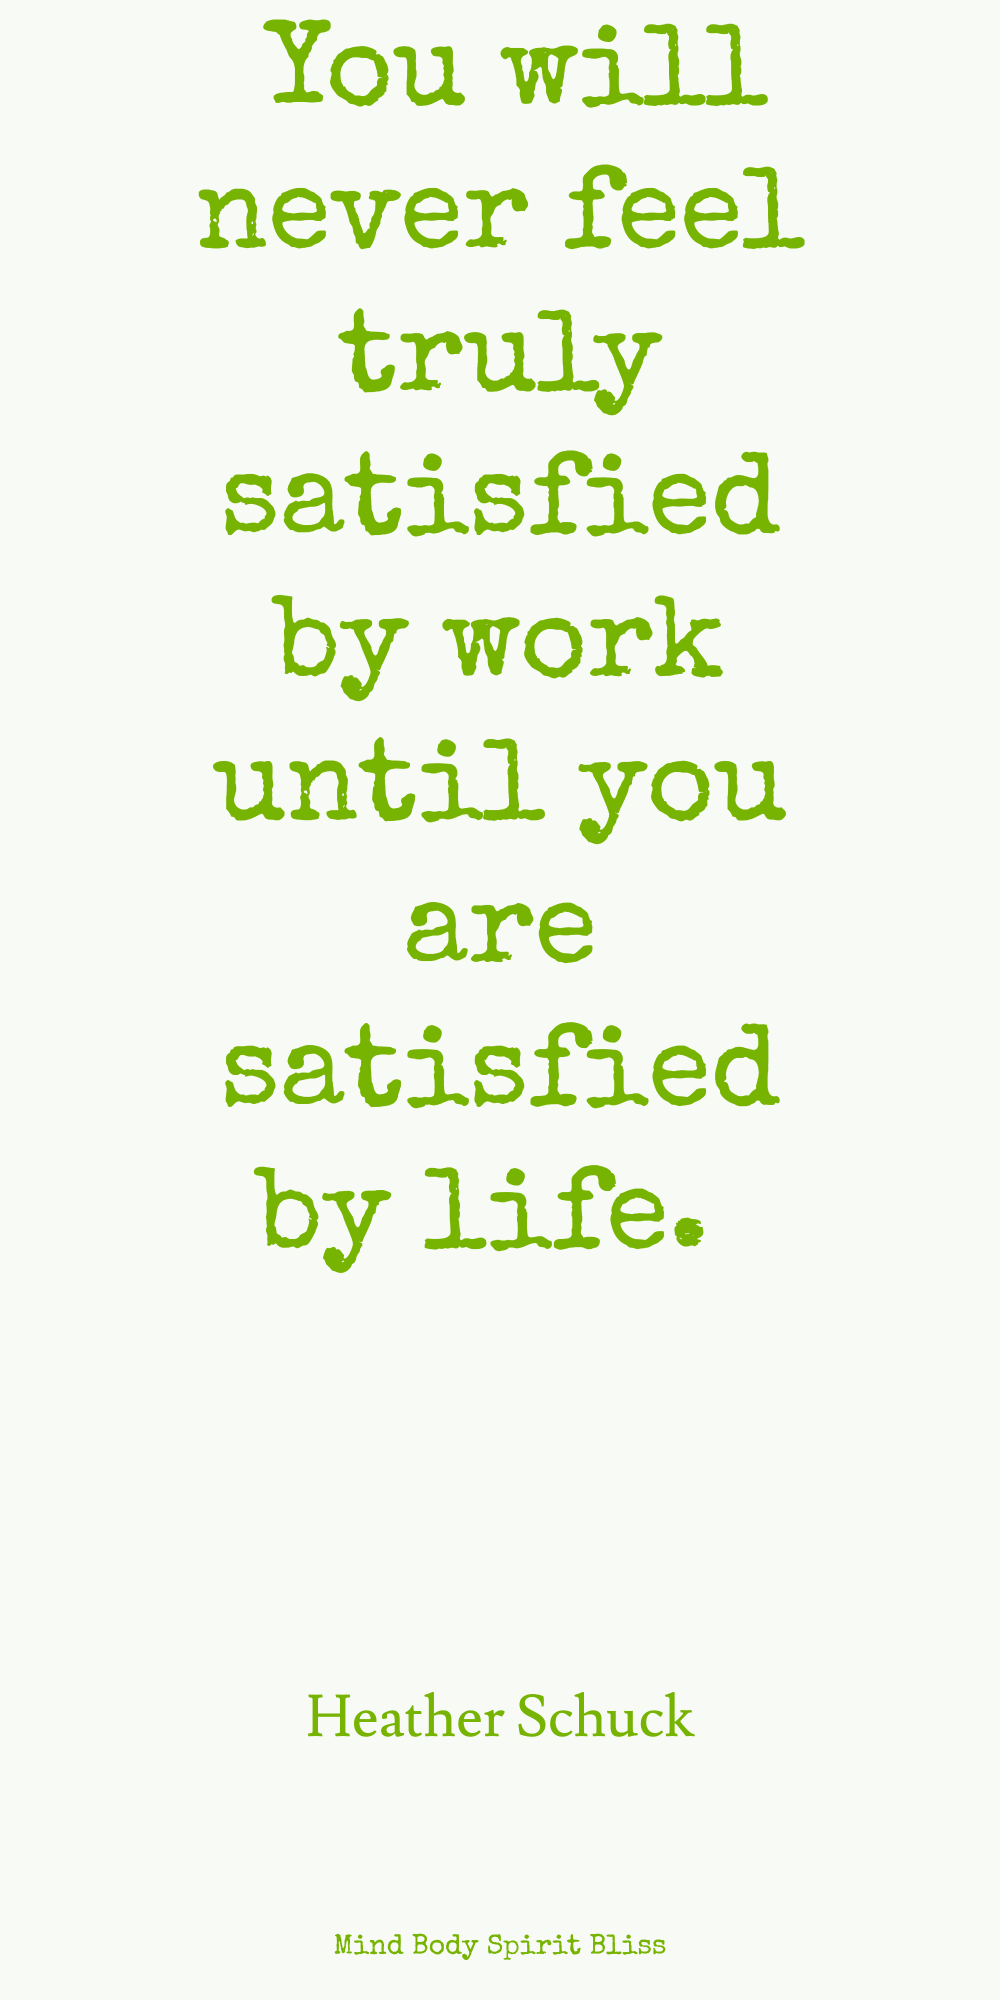 25 Work Life Balance Quotes You Need To Live By In 2019 -